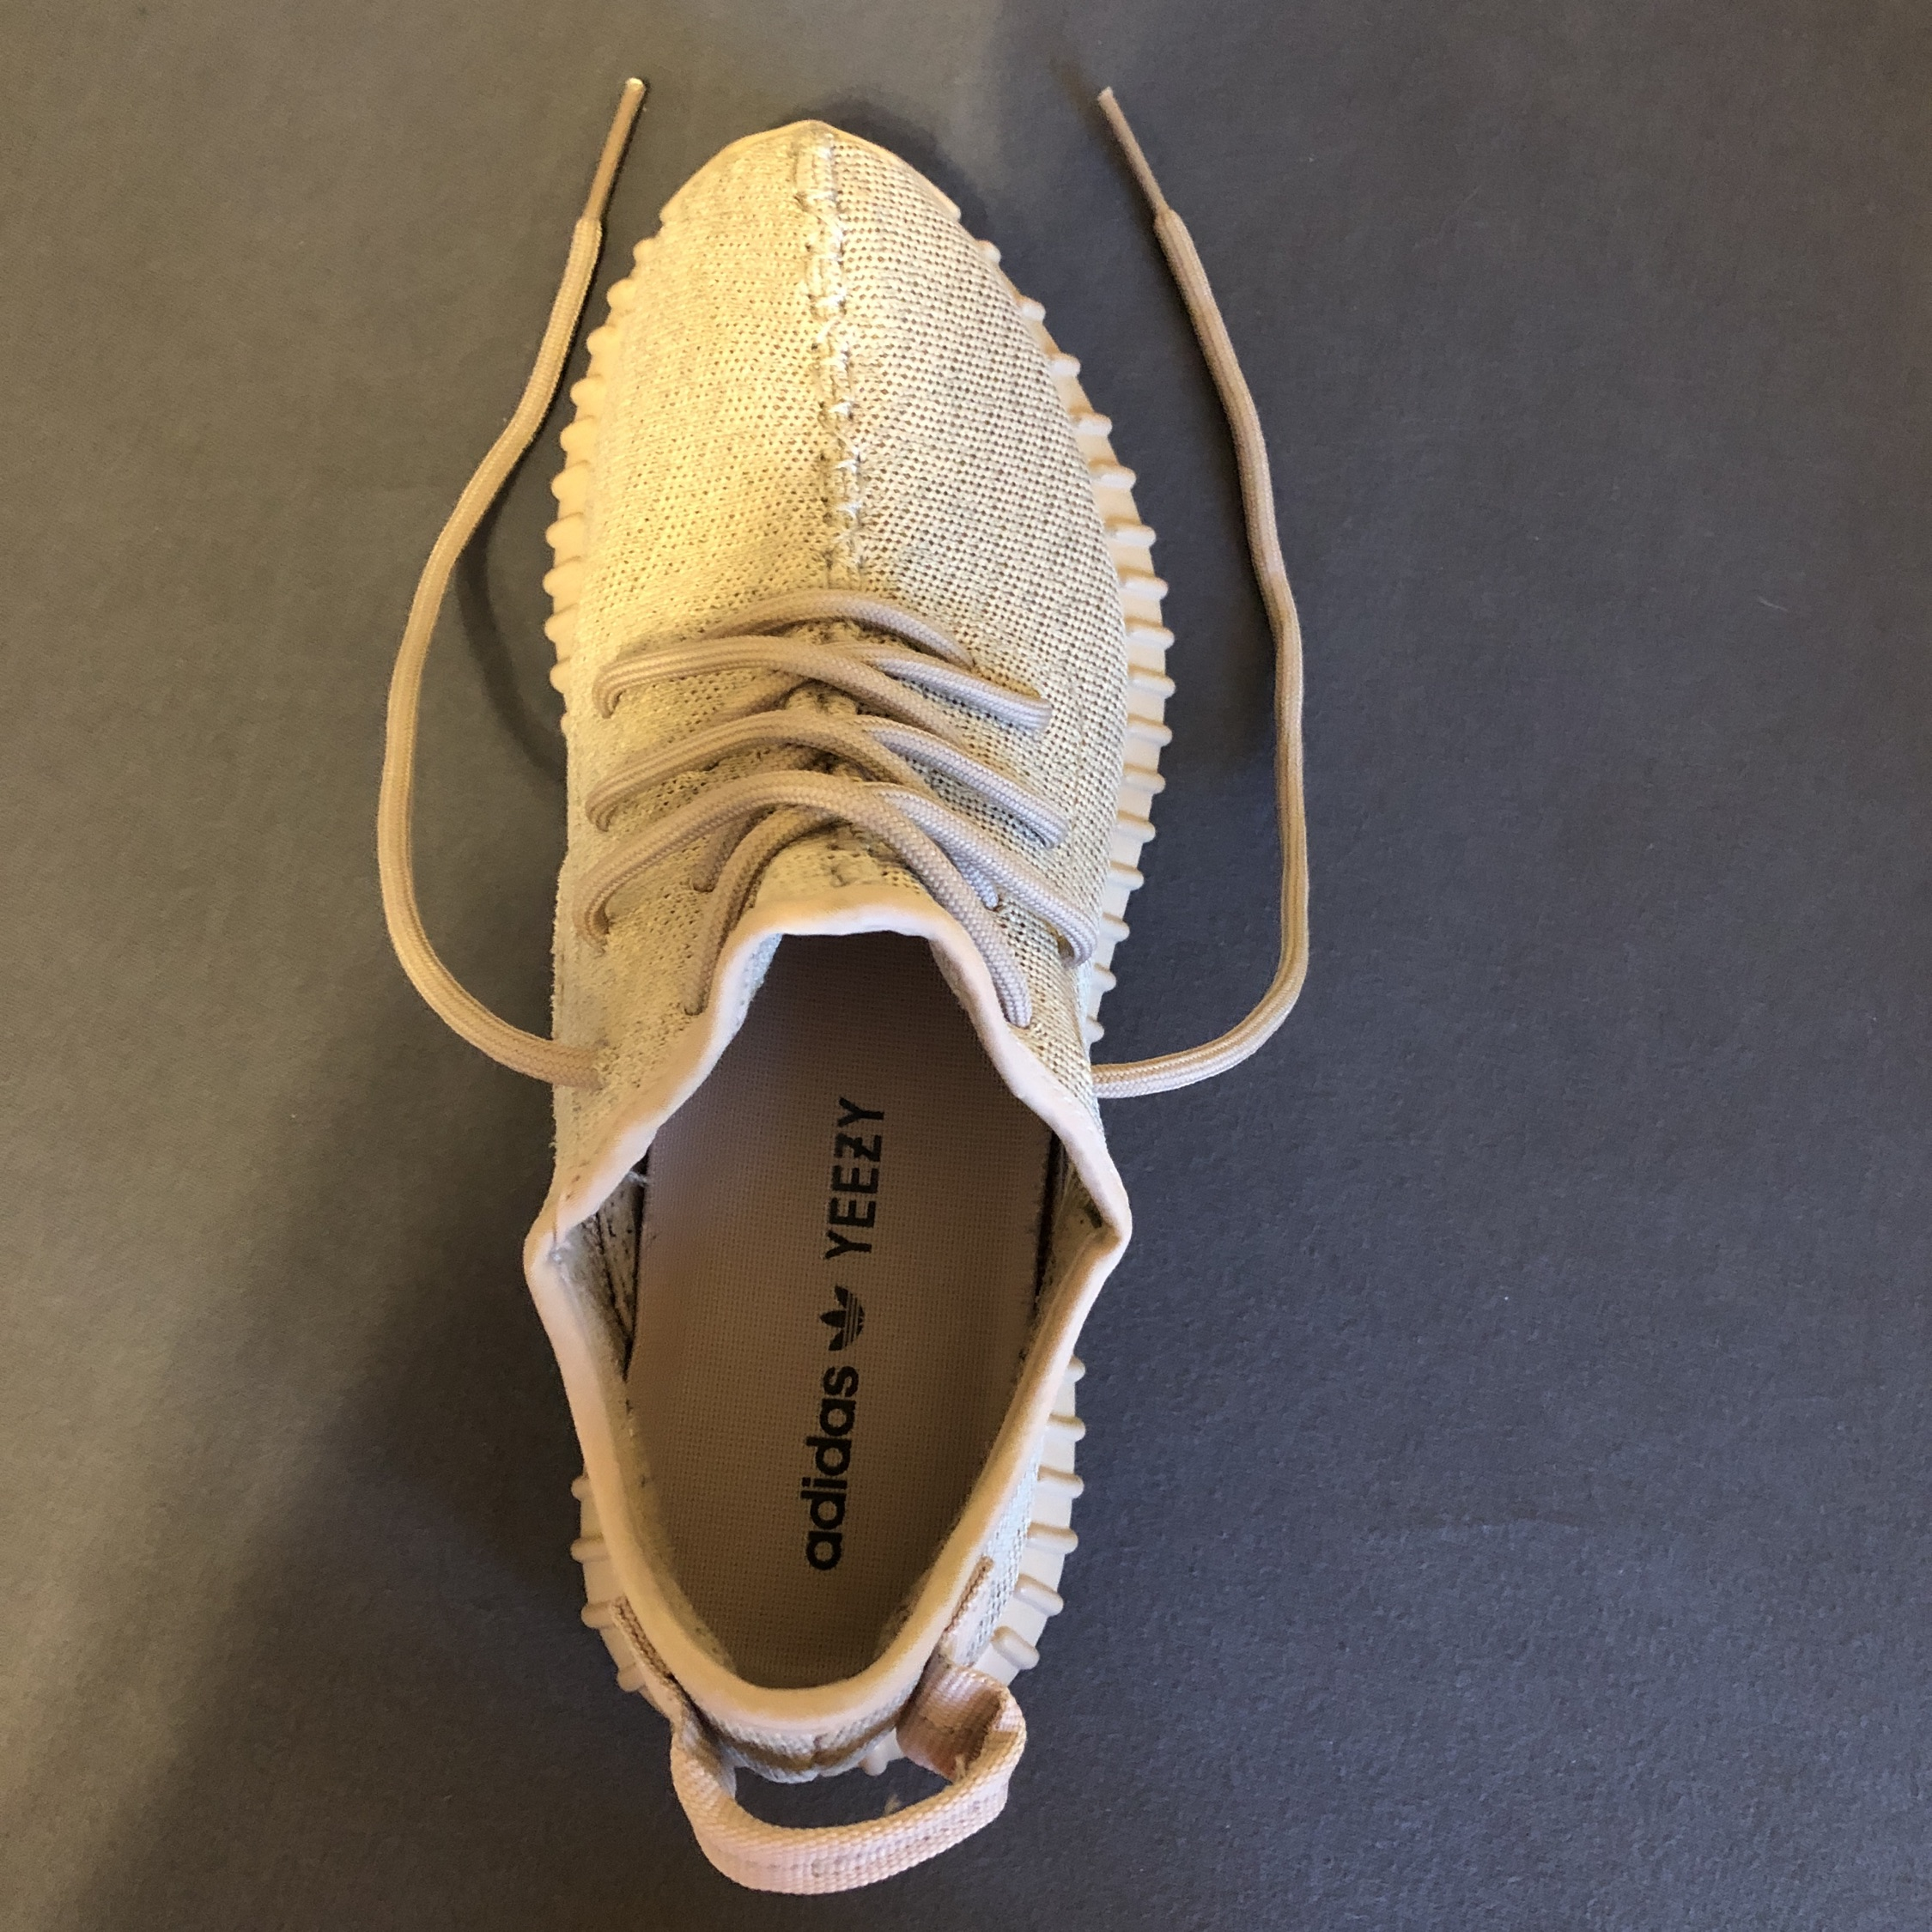 Details about Adidas yeezy boost 350 V1 oxford tan off white supreme